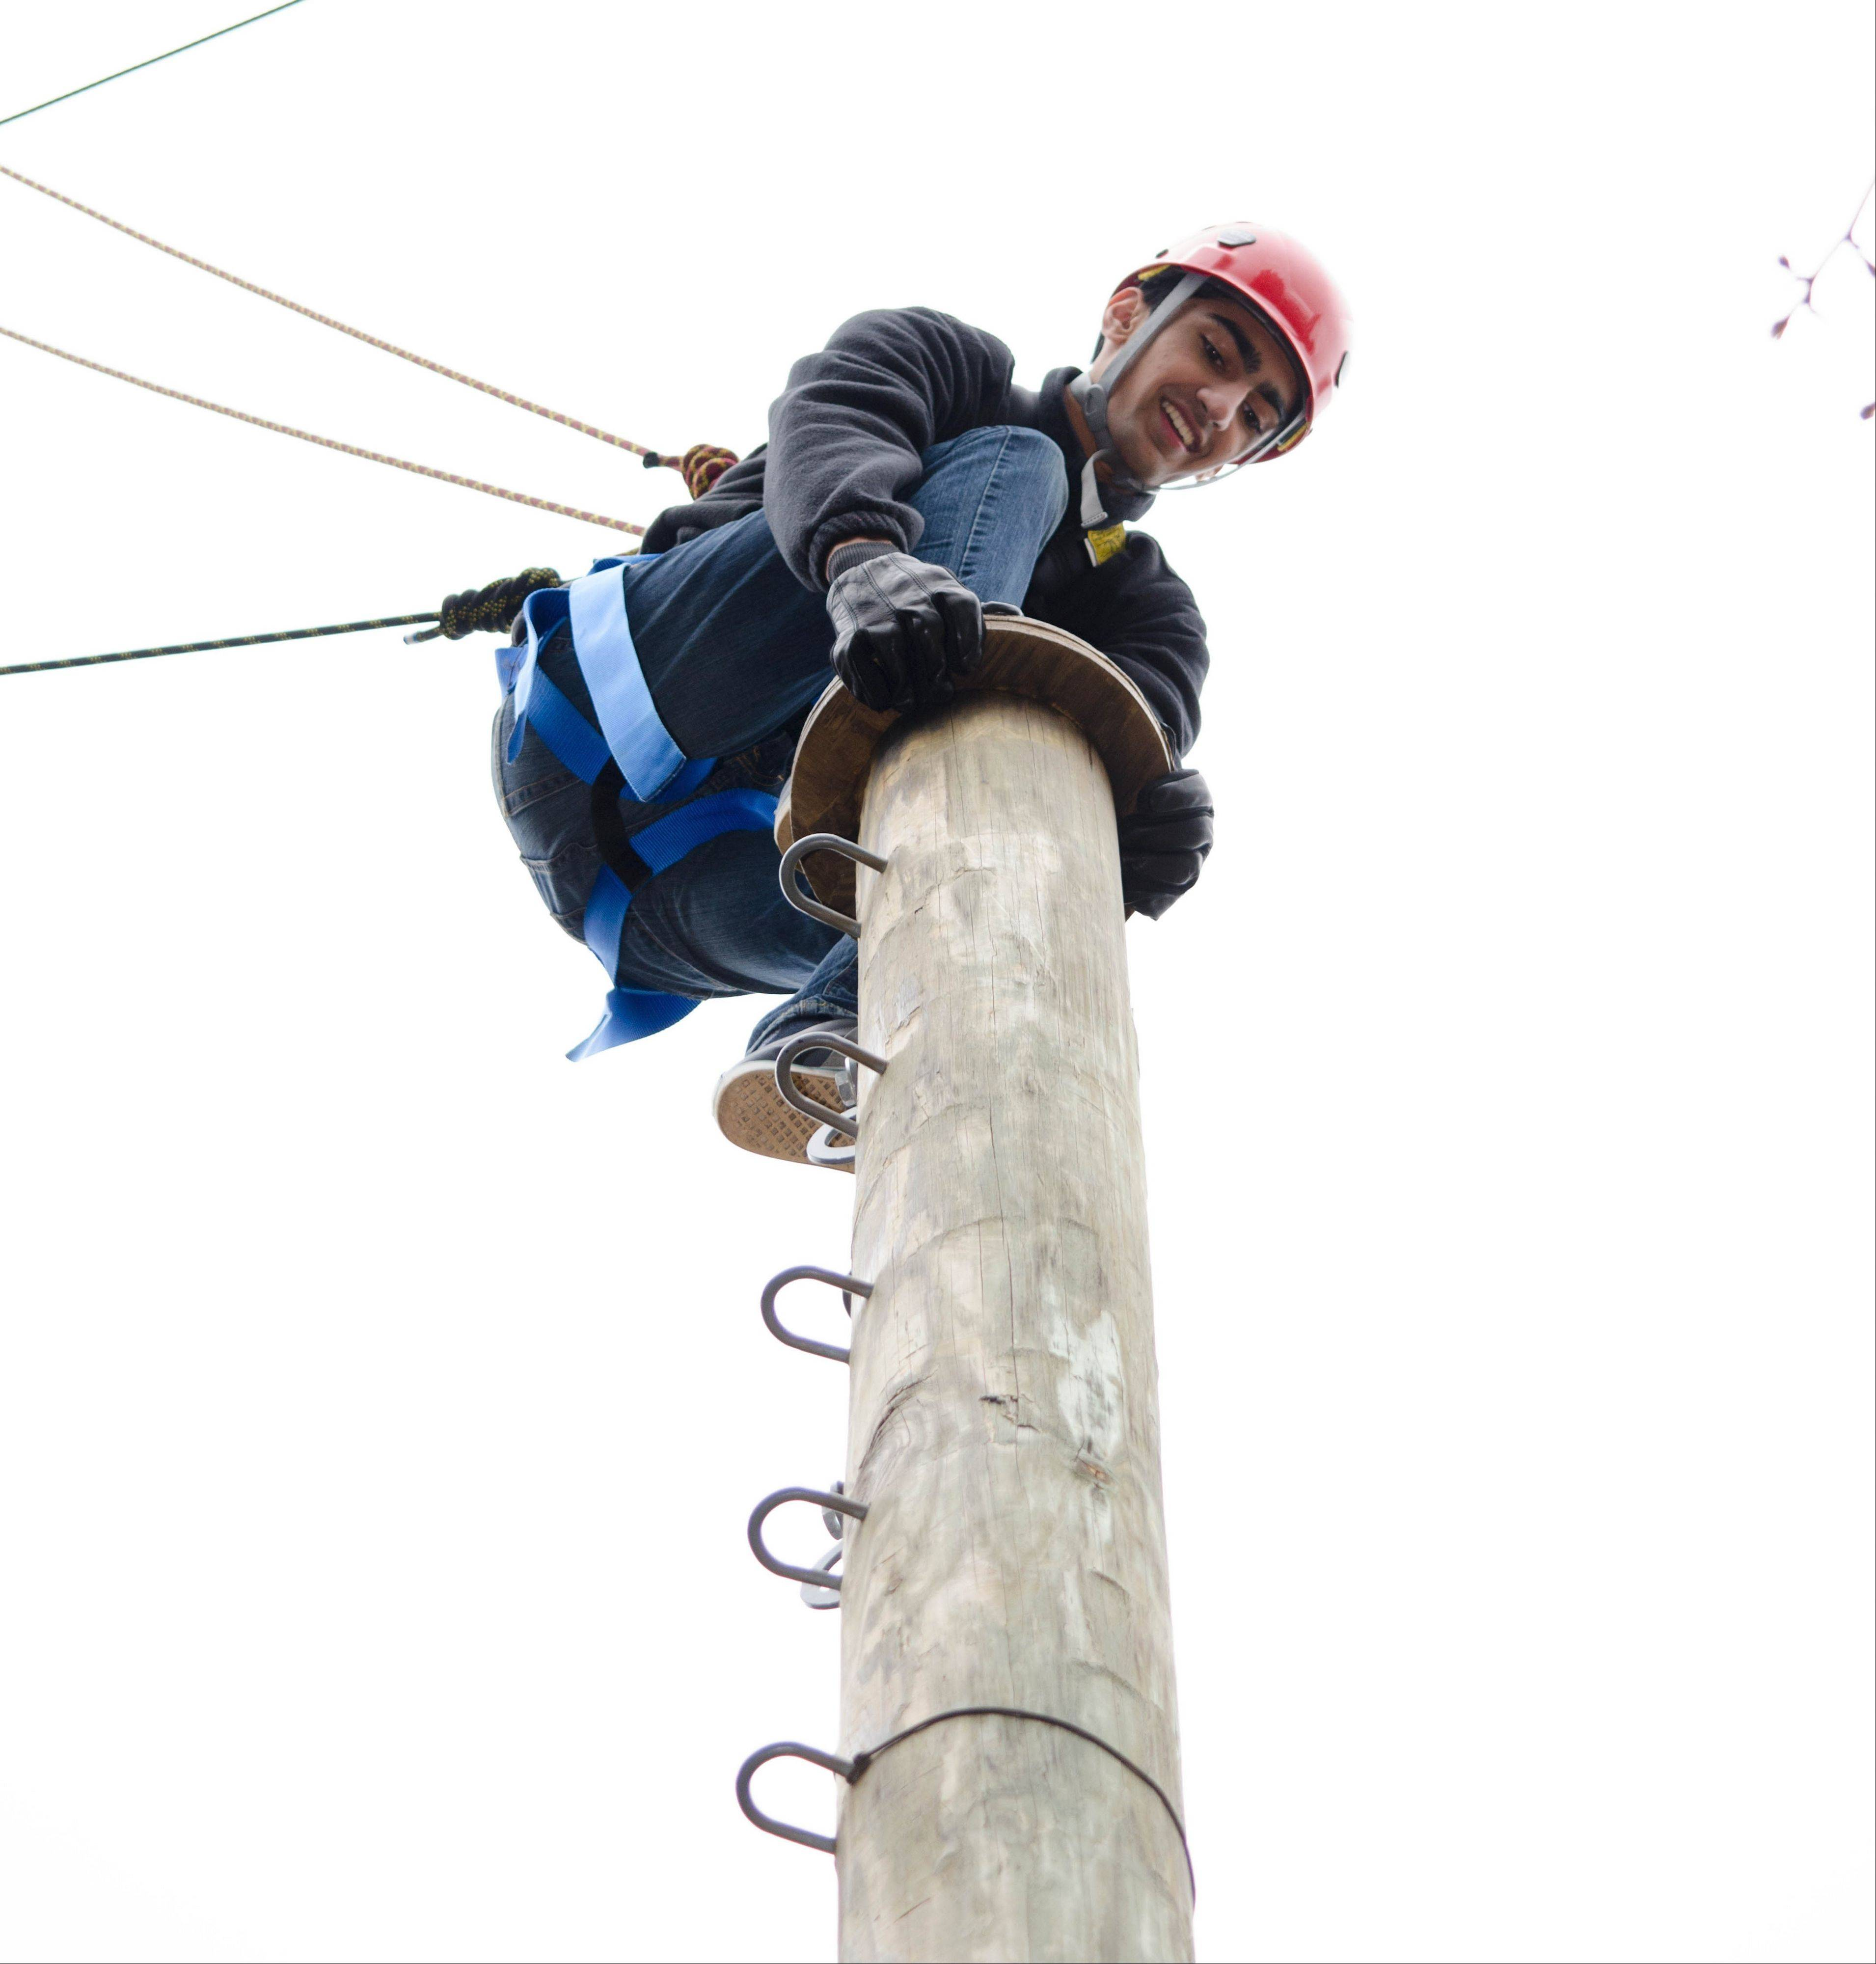 Rohan Shah of Aurora is in on top of the 32-foot pamper pole at the Honeywell Leadership Challenge.